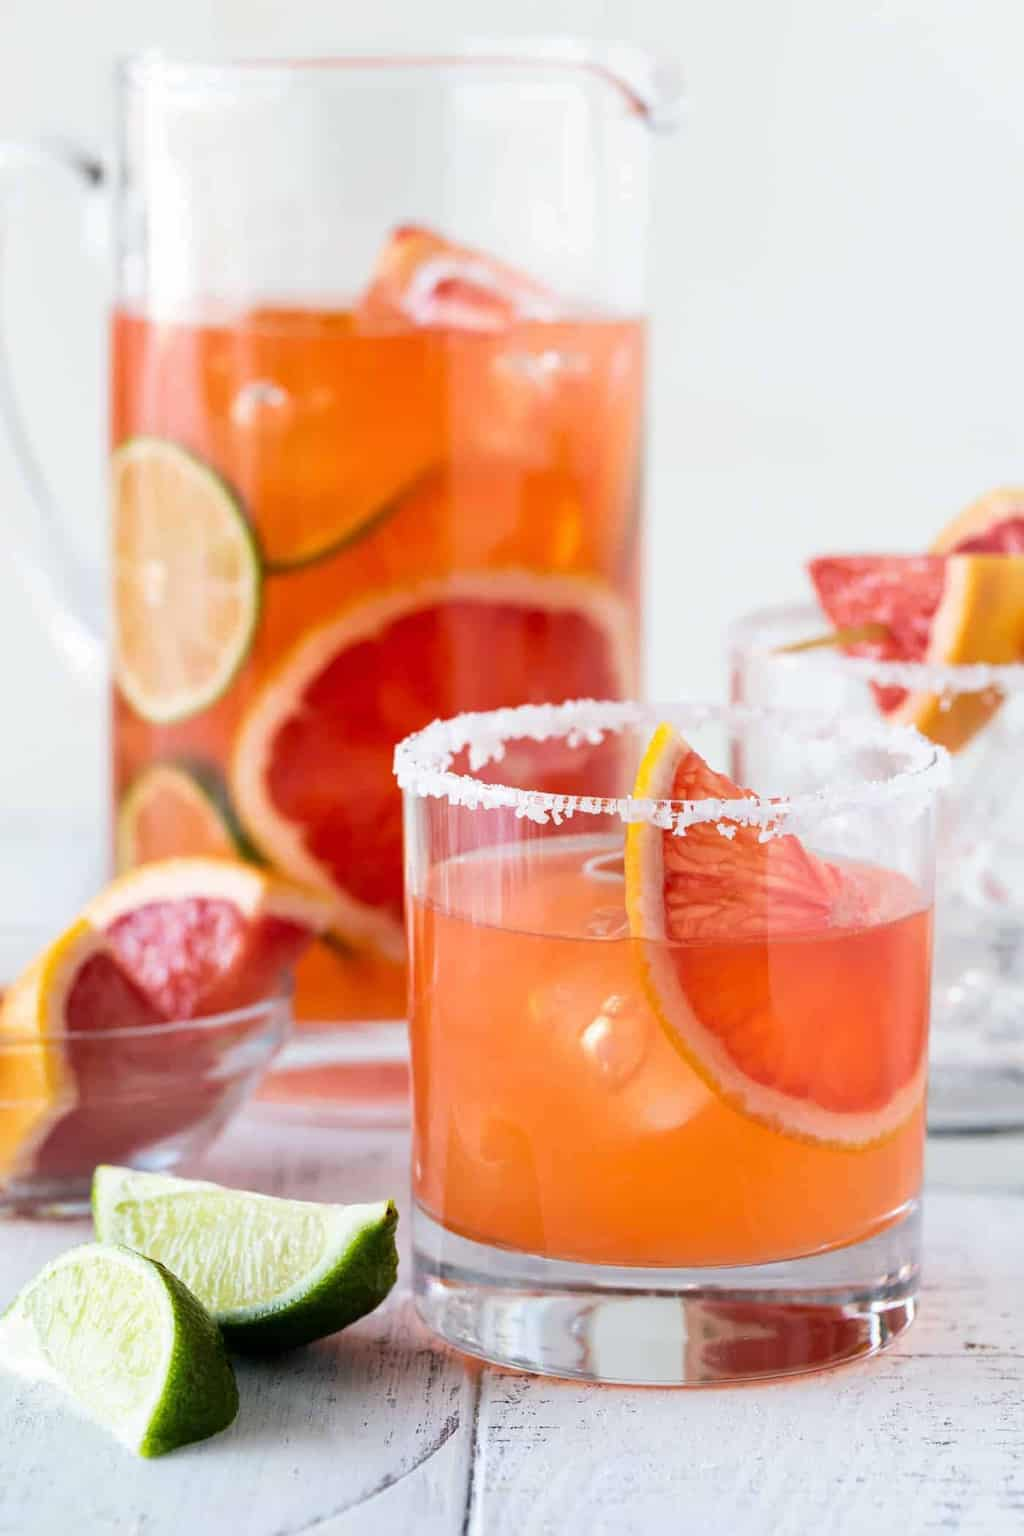 Graperfuit Aperol Cocktails in a low ball glass with a salt rim. Pitcher of Grapefruit Aperol cocktails with fresh grapefruit slices.